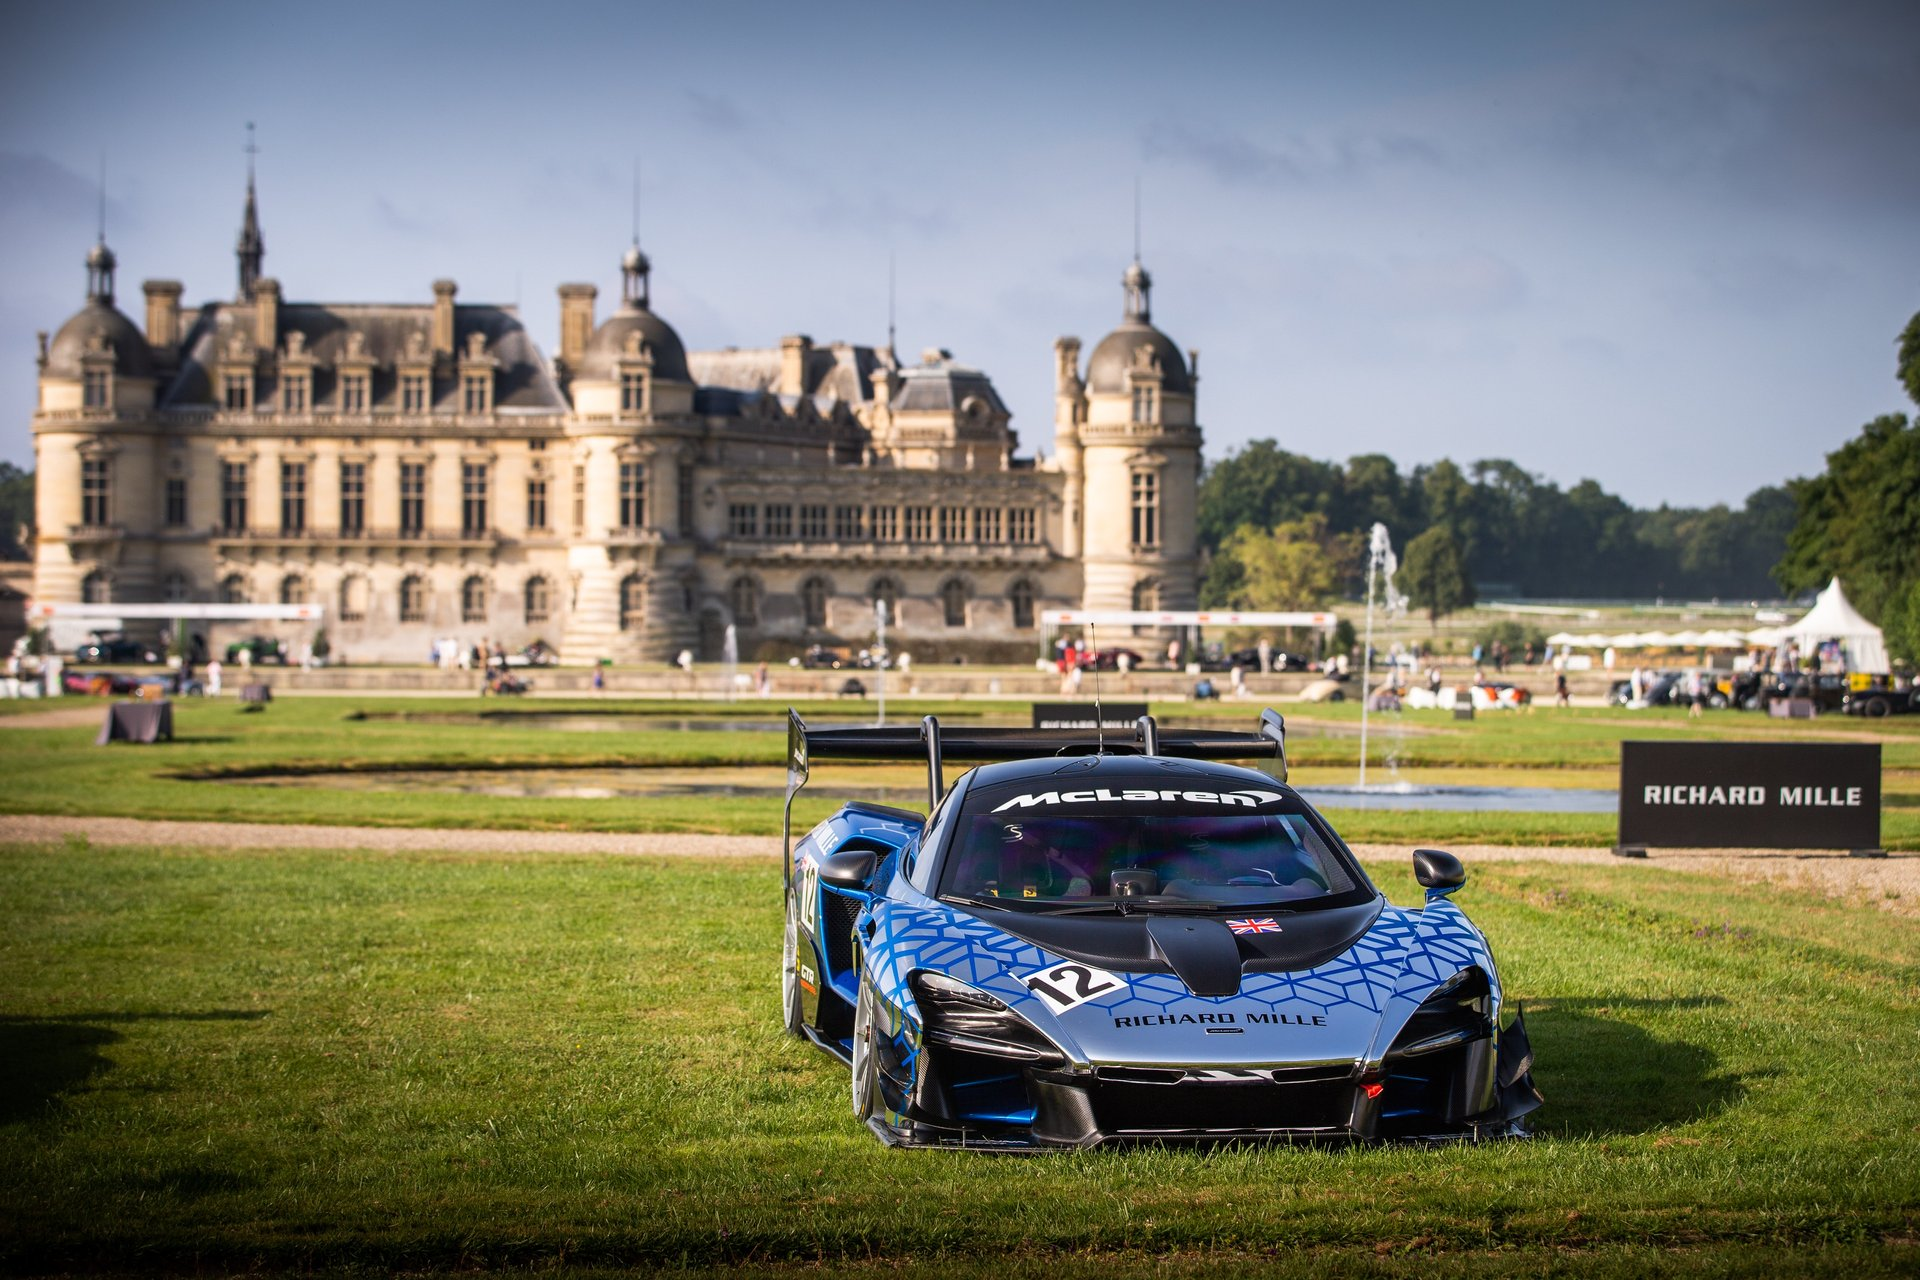 CHANTILLY ARTS & ÉLÉGANCE RICHARD MILLE 2019